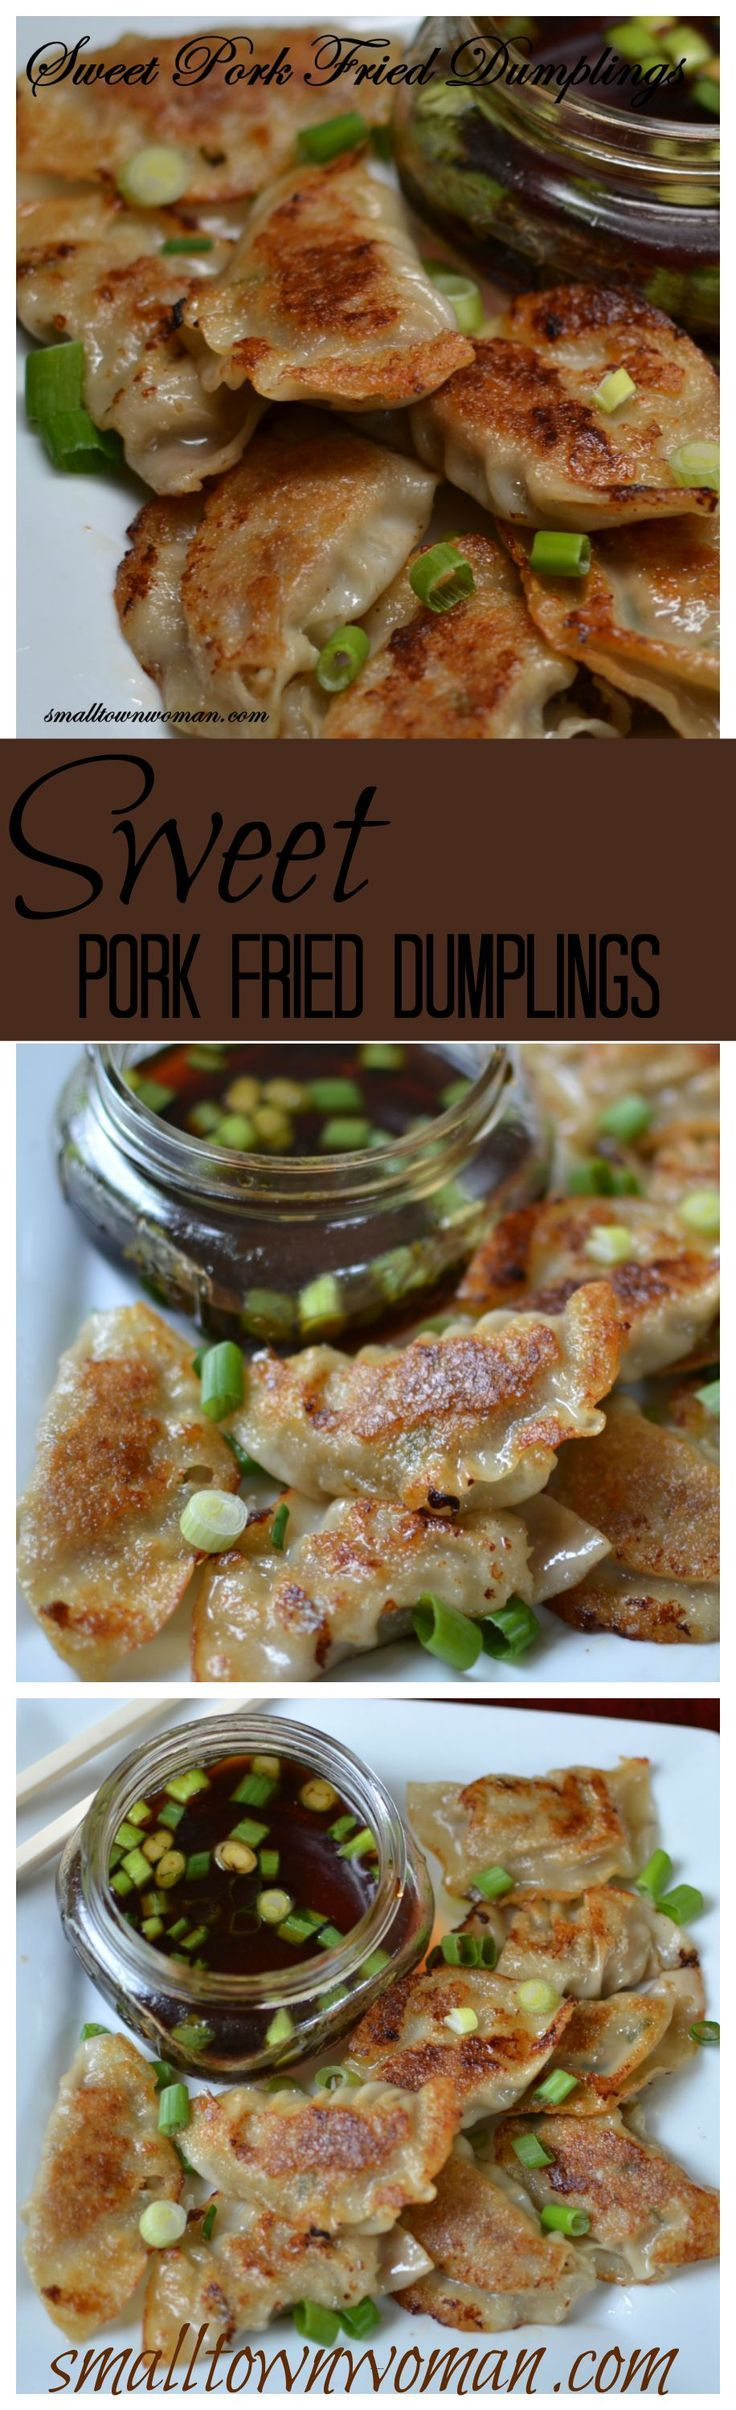 These are so scrumptious!  I have made them both ways, steamed & fried and they are equally delicious both ways! #gamedayfood